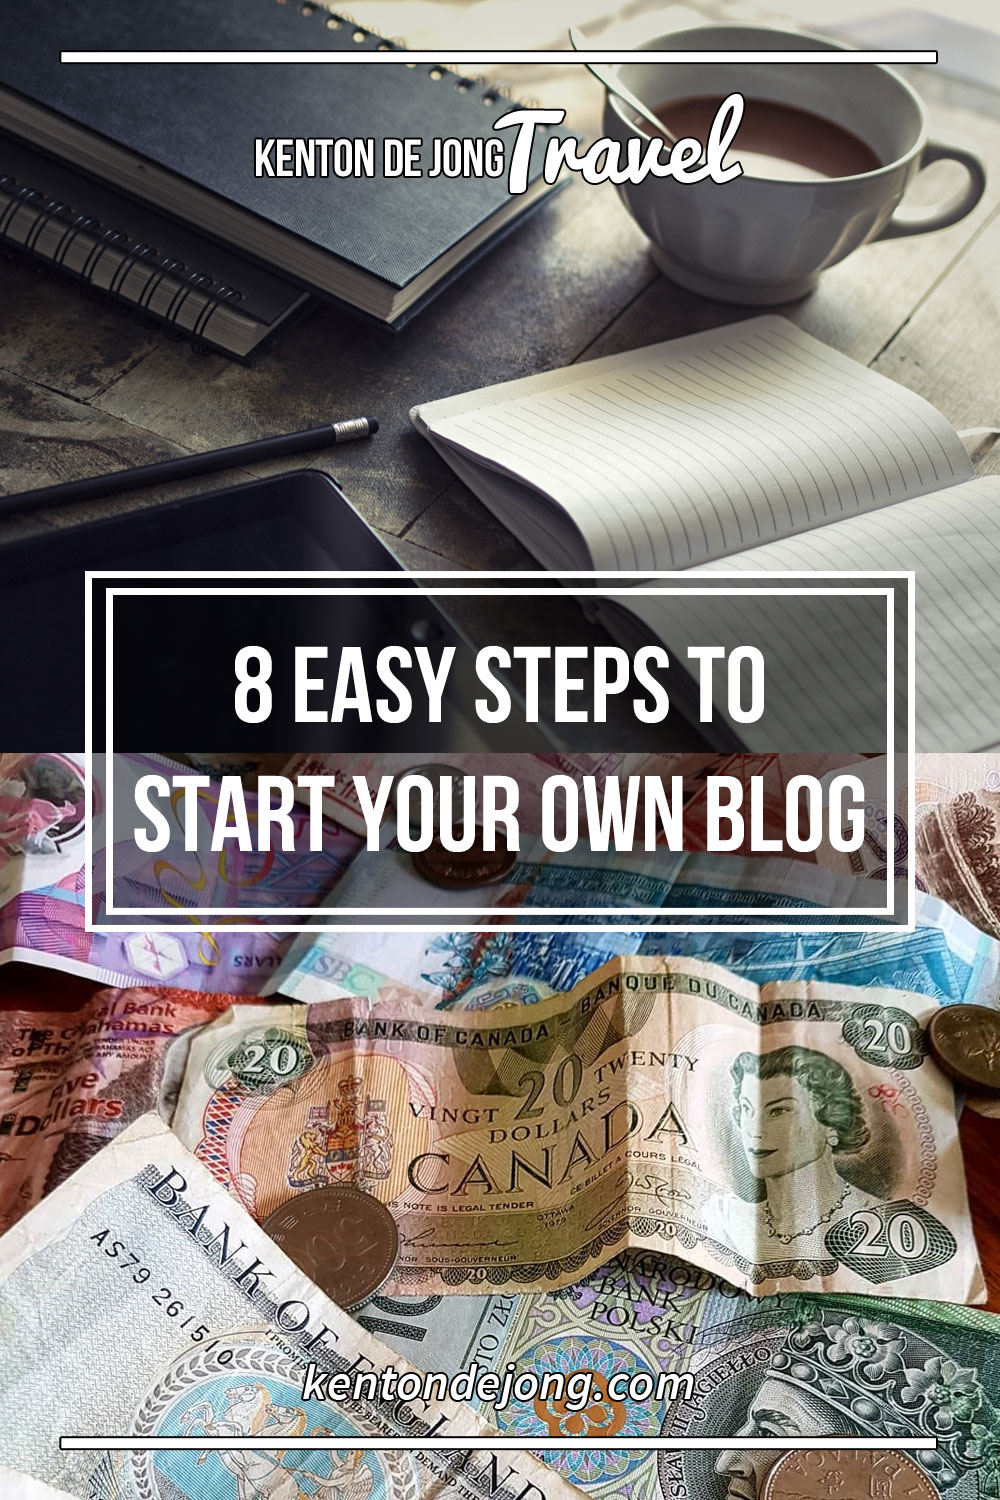 8 Easy Steps to Starting Your Own Blog